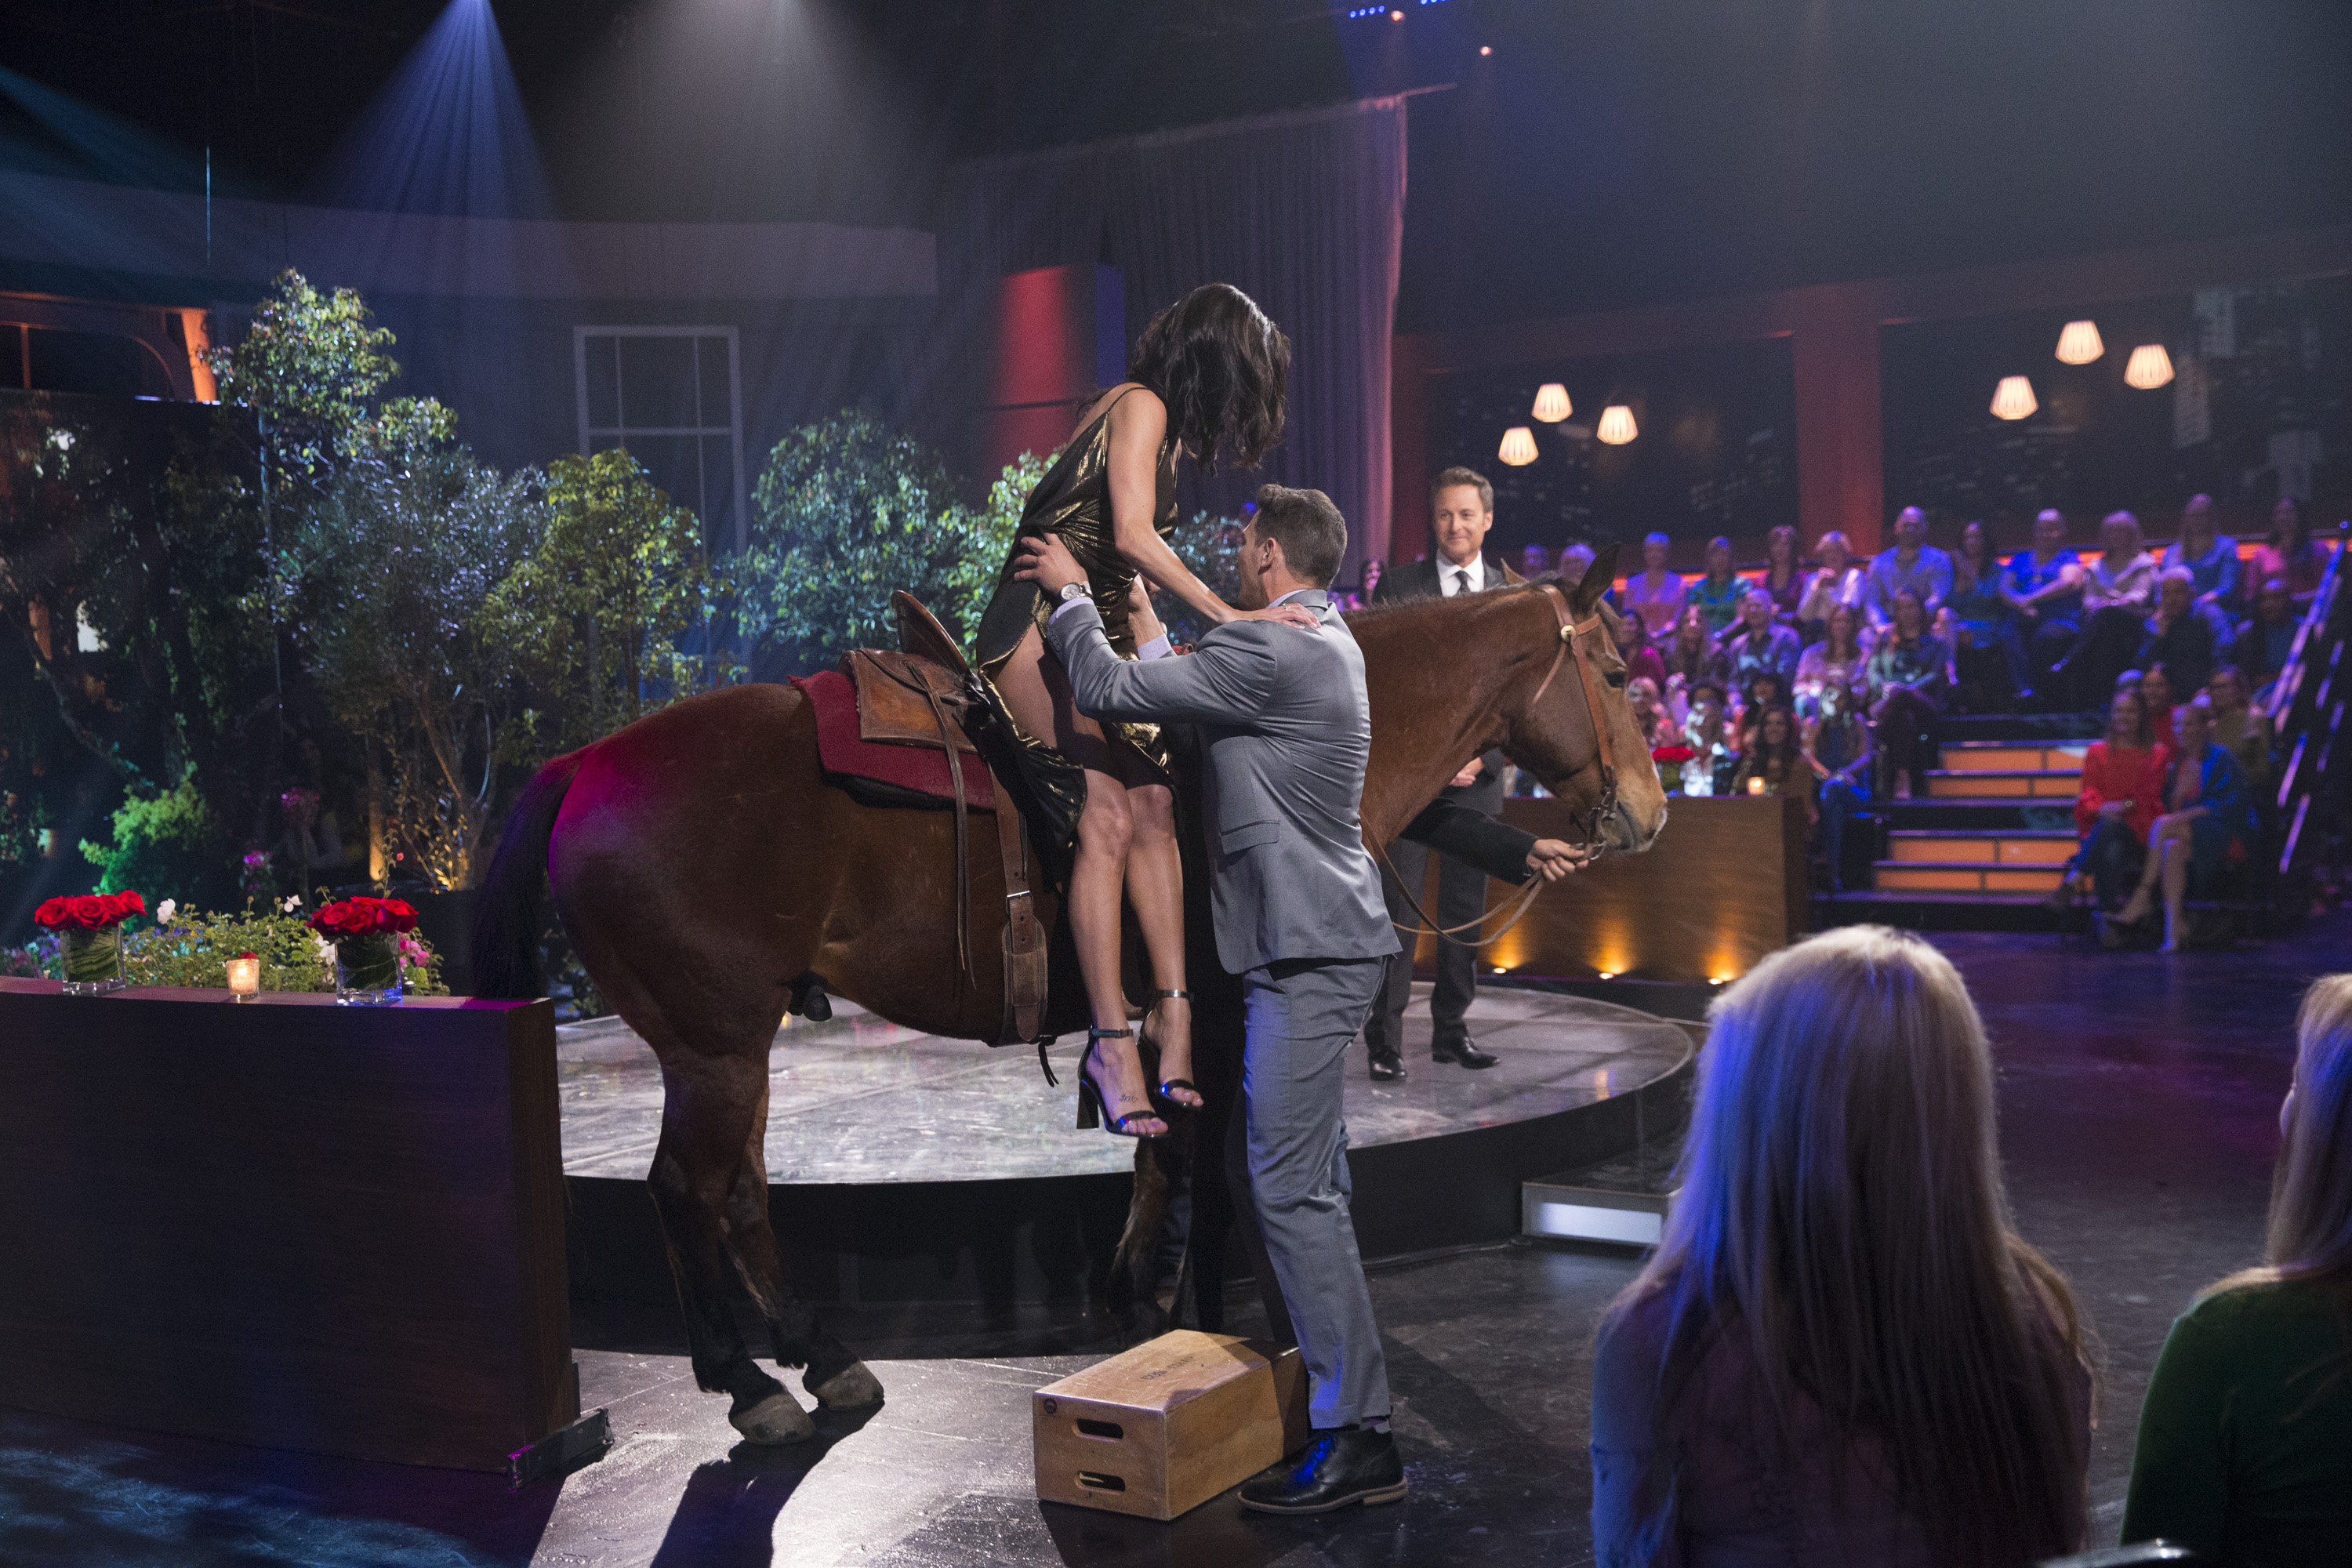 So Becca, we will be rooting for you and we truly do hope you end your time with this franchise on a high note. If not... at least you took a ride on a horse! (Image: ABC/Paul Hebert)